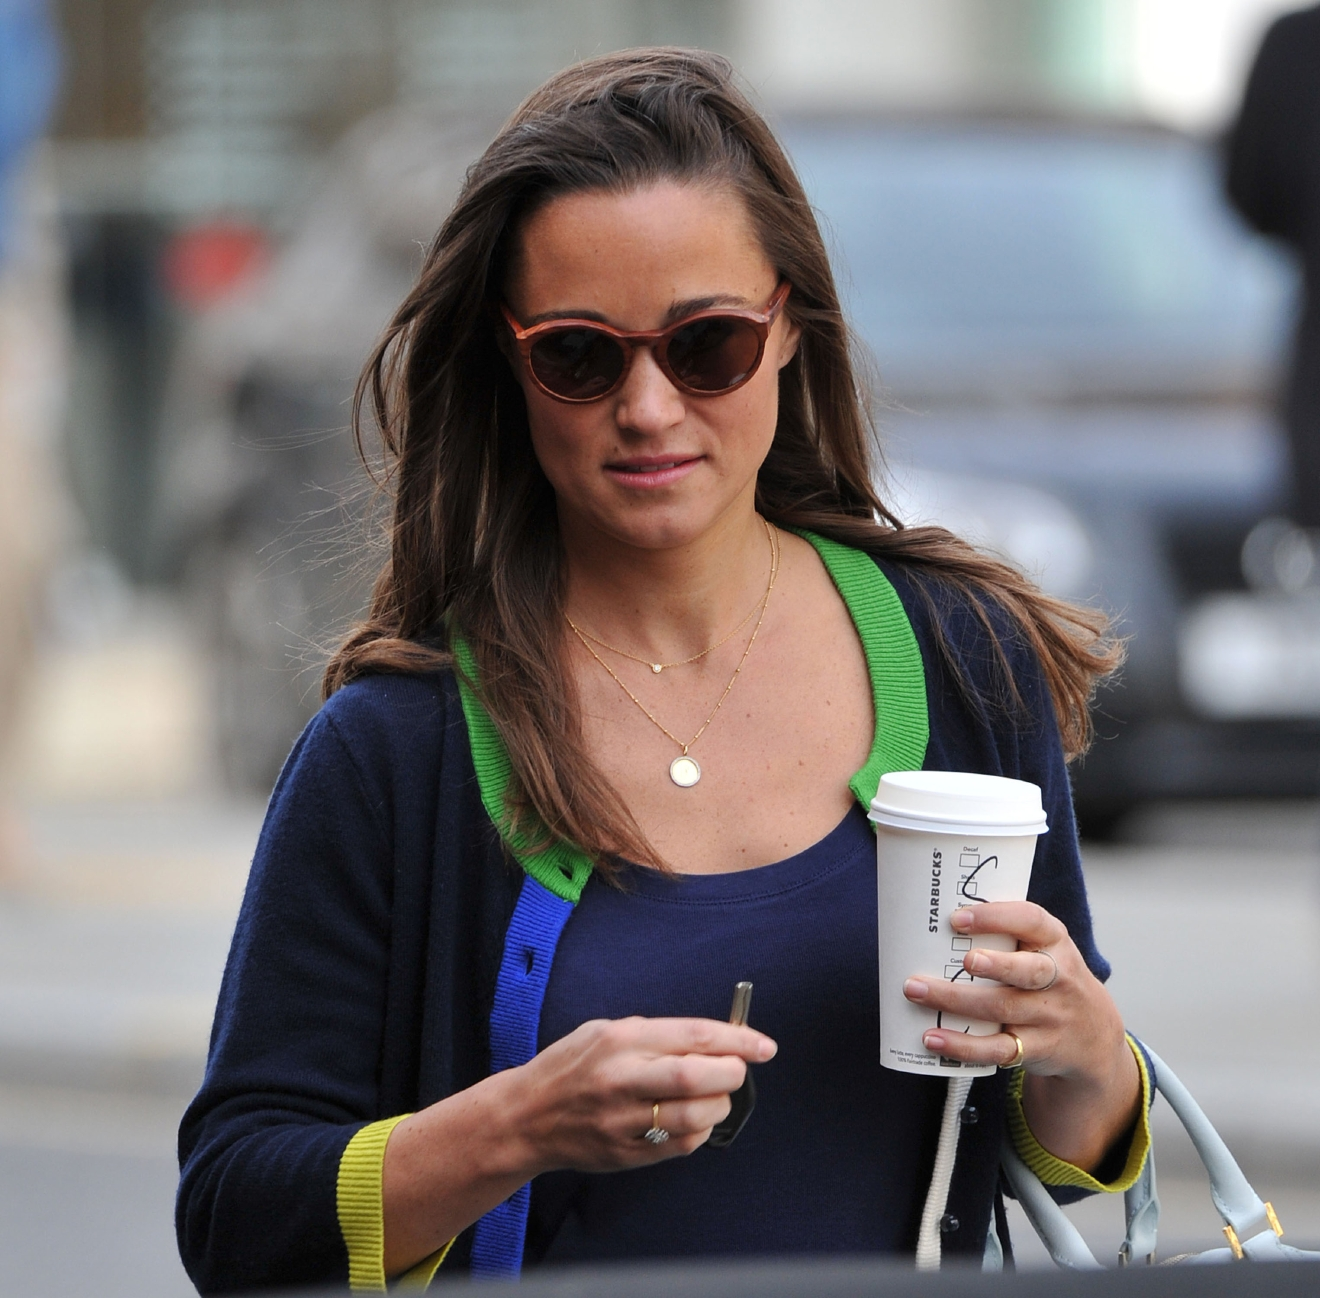 Pippa Middleton out and about in west London London, England - 20.09.12  Featuring: Pippa Middleton Where: London, United Kingdom When: 20 Sep 2012 Credit: WENN